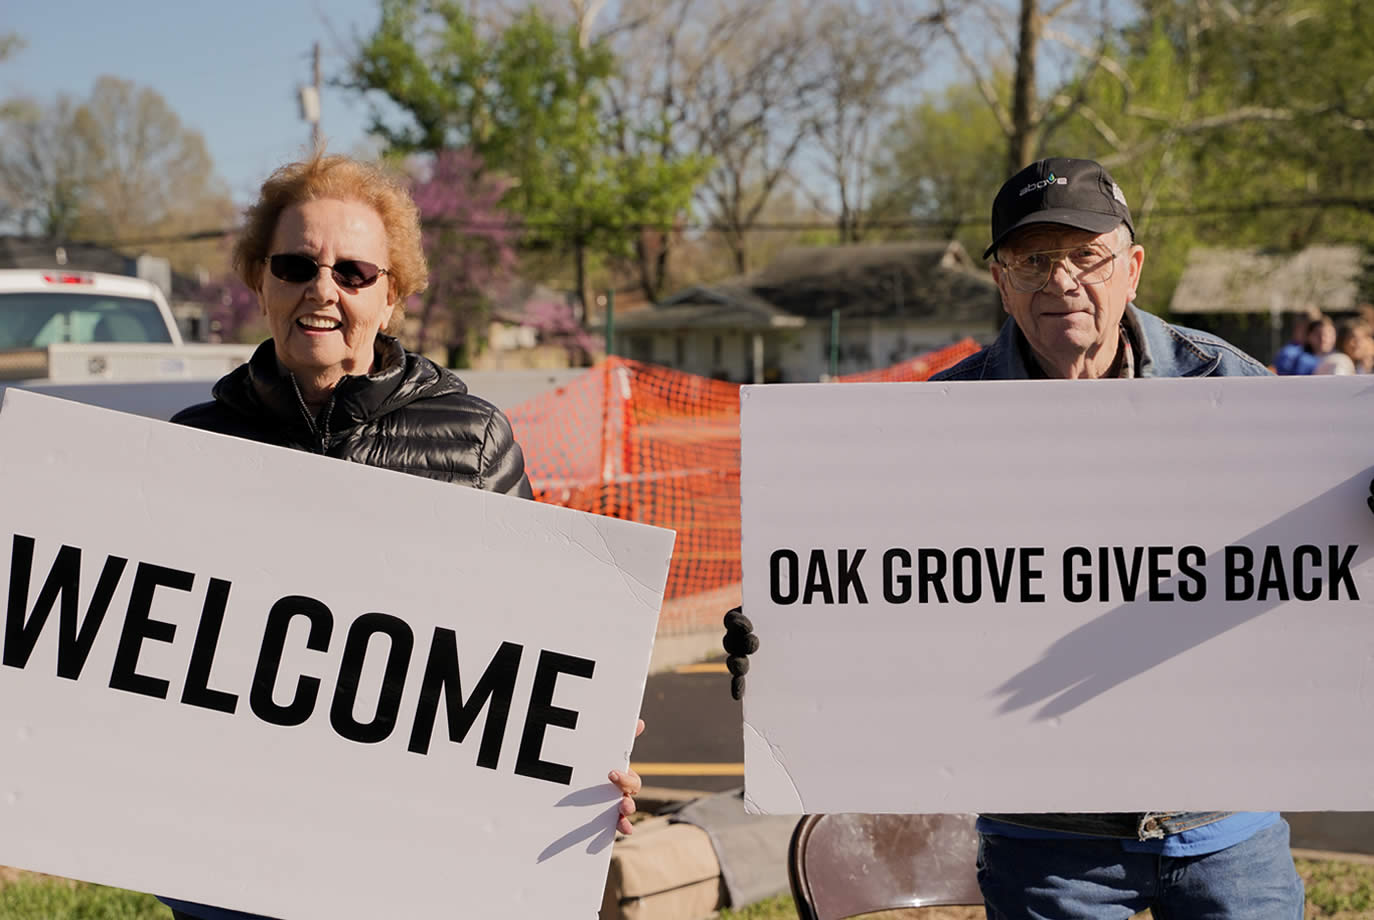 Oak Grove Gives Back